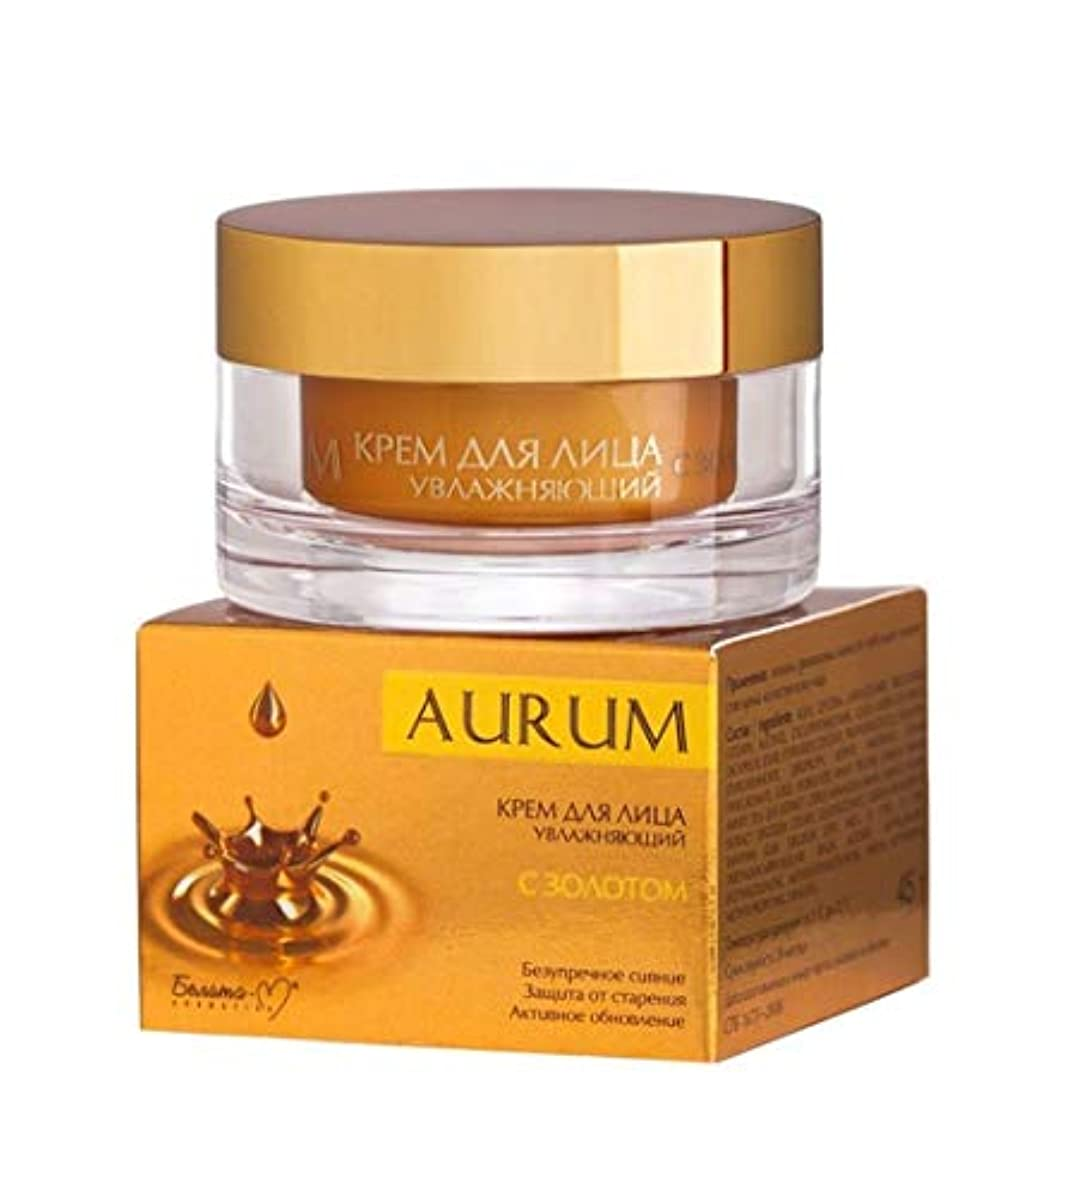 MOISTURIZING DAY CREAM FOR FACE WITH GOLD   hyaluronic acid, wheat proteins, extracts of white tea and orange...